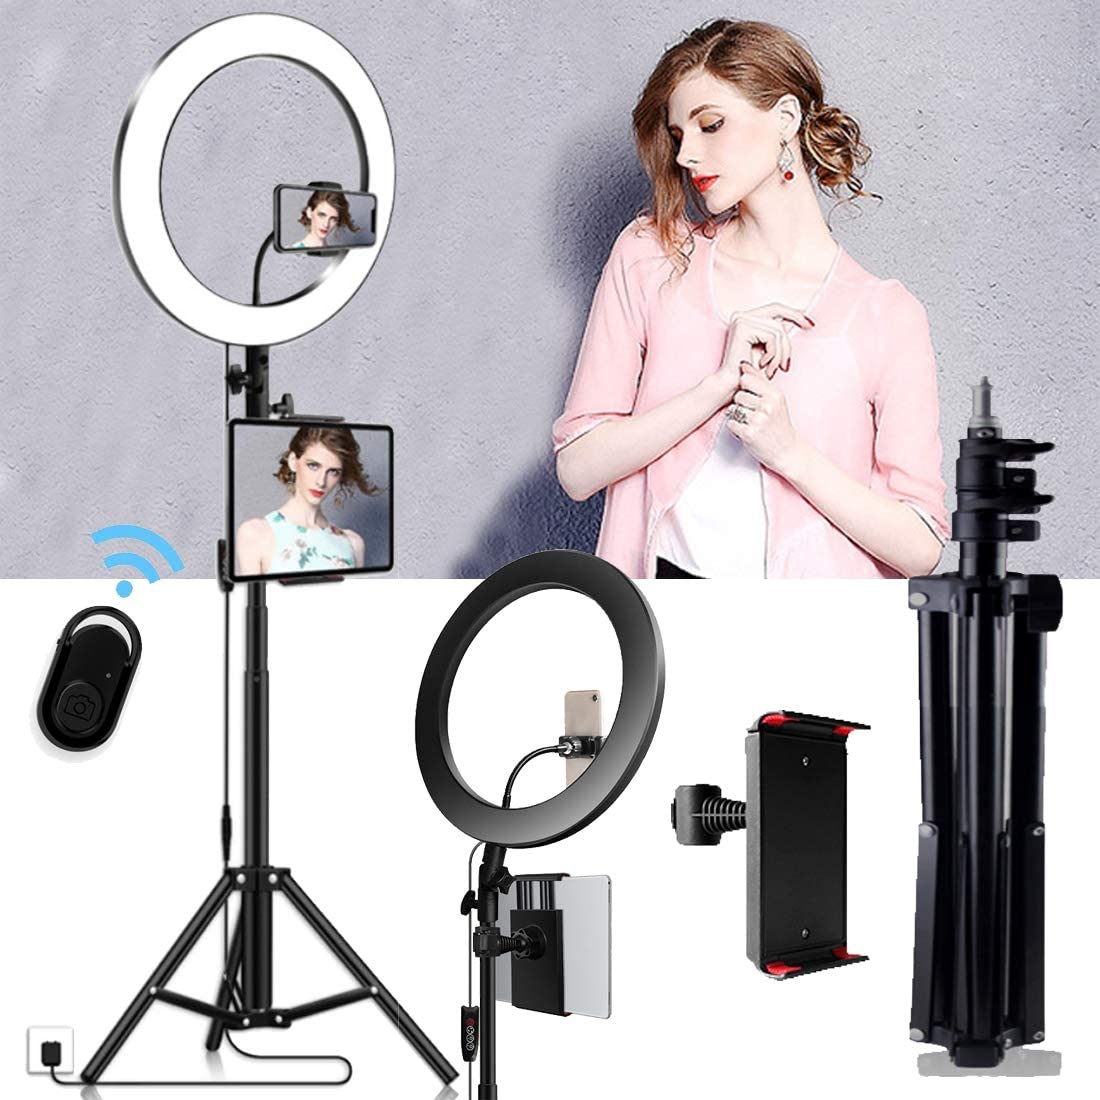 DLMPT LED Ring Light Lighting Kit with Adjustable Tripod Stand 3 Colors 10 inches Ringlight Make Up Light for Vlogs Live Stream Phone YouTube